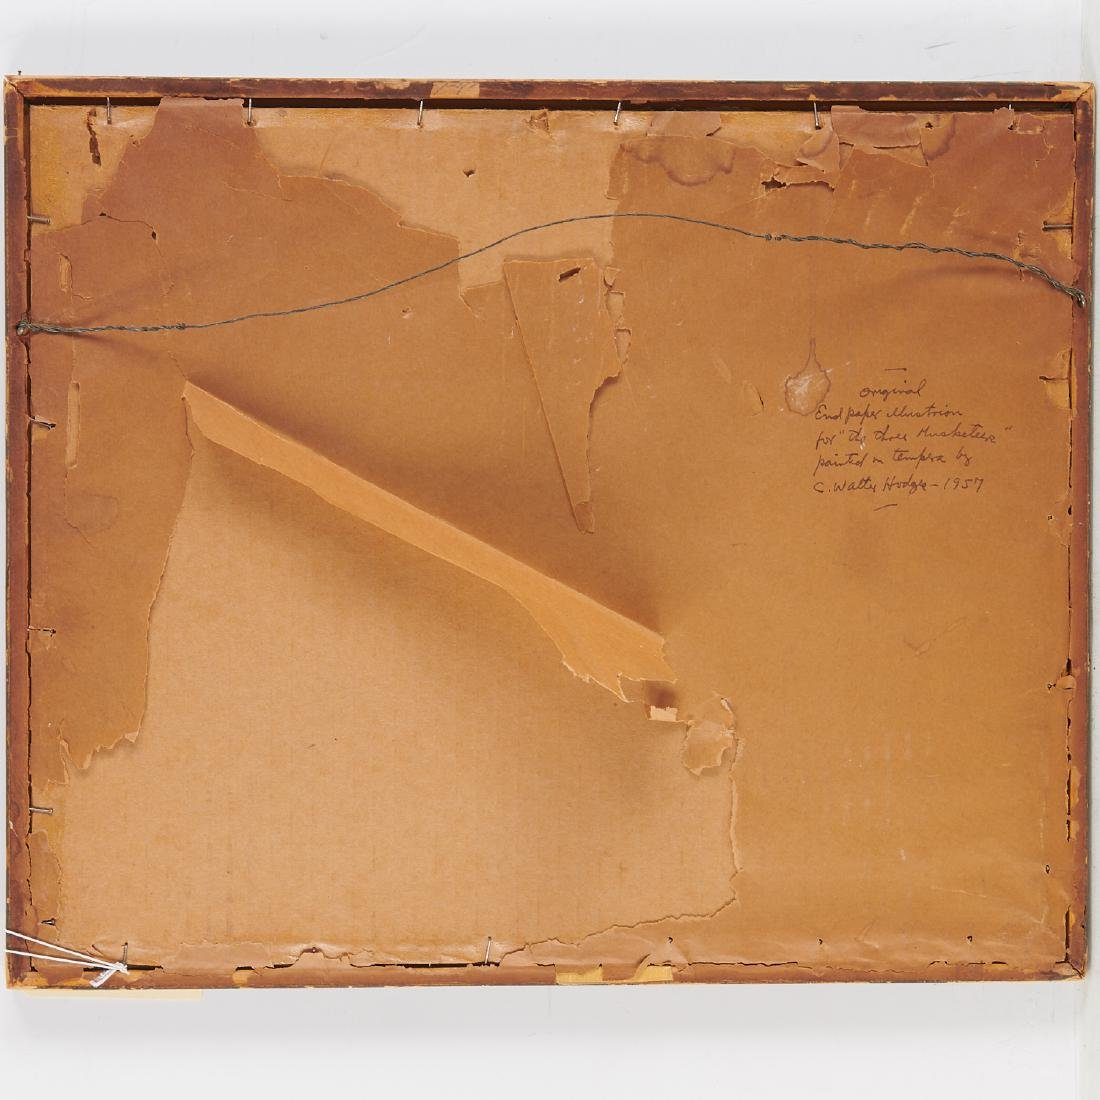 C. Walter Hodges, painting, 1957 - 8